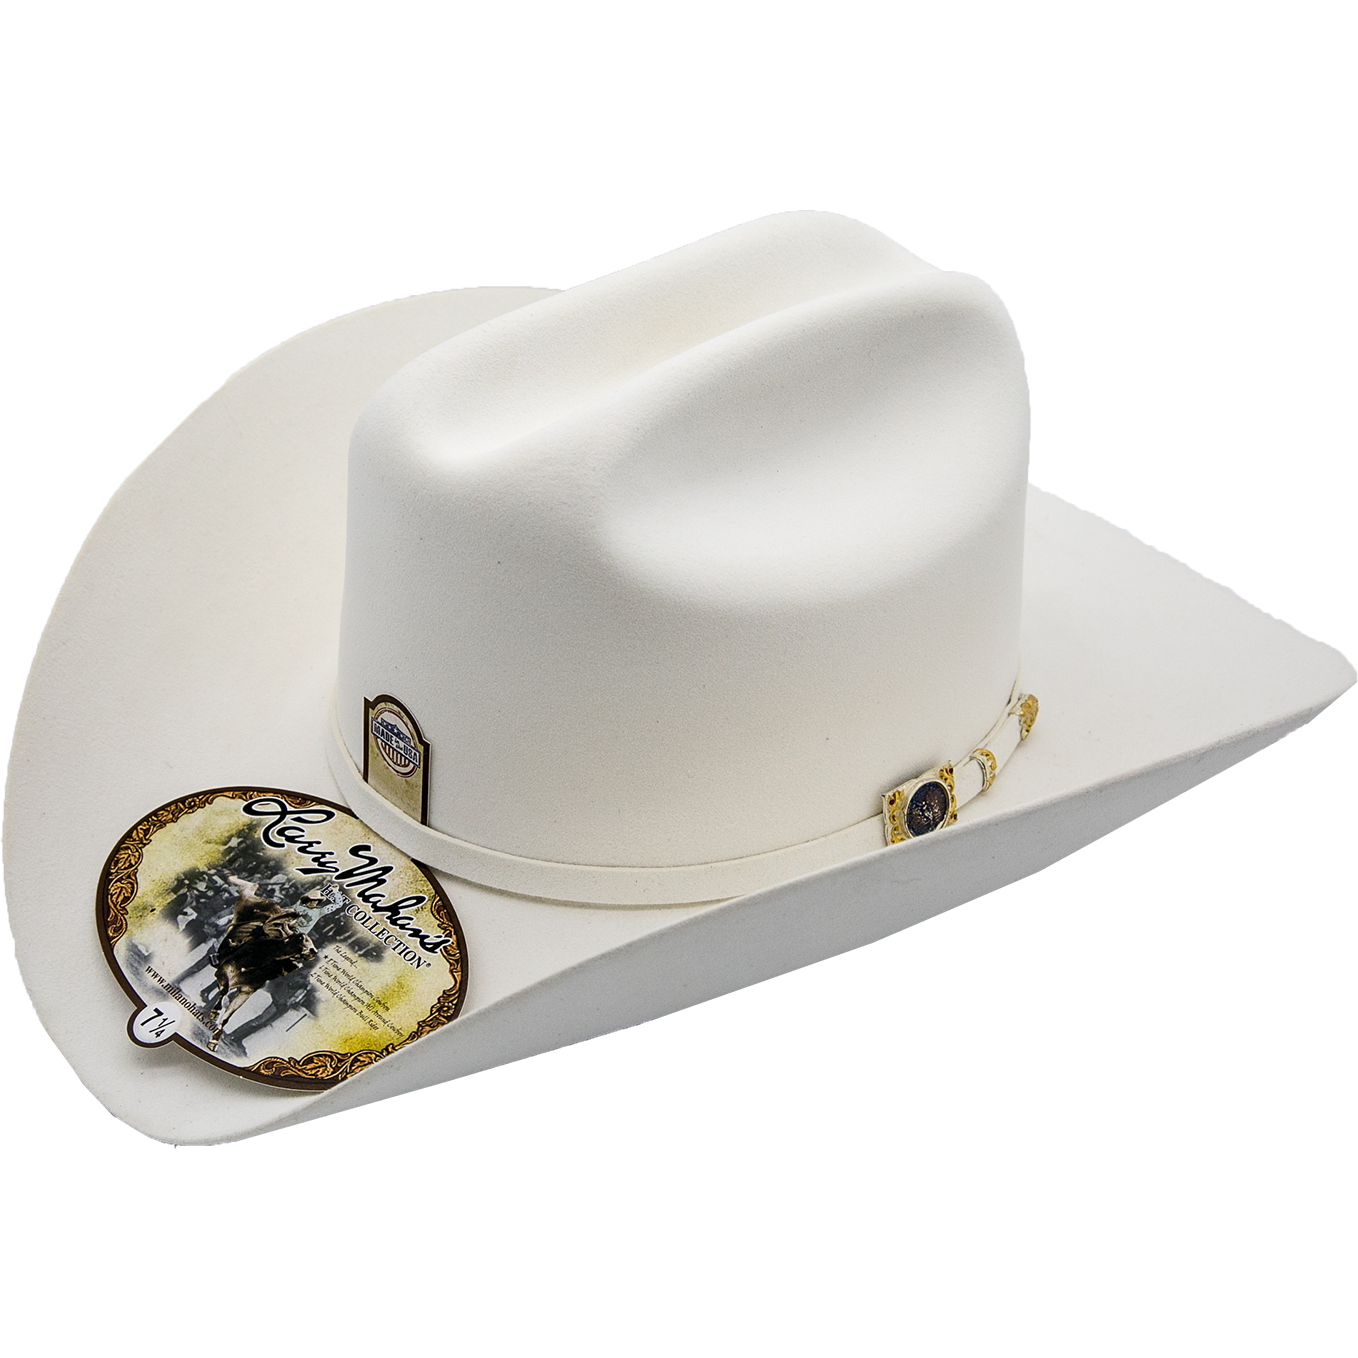 100x Larry Mahan Hat Independencia White Premium Fur Felt Cowboy Hat ... e1d701c4682